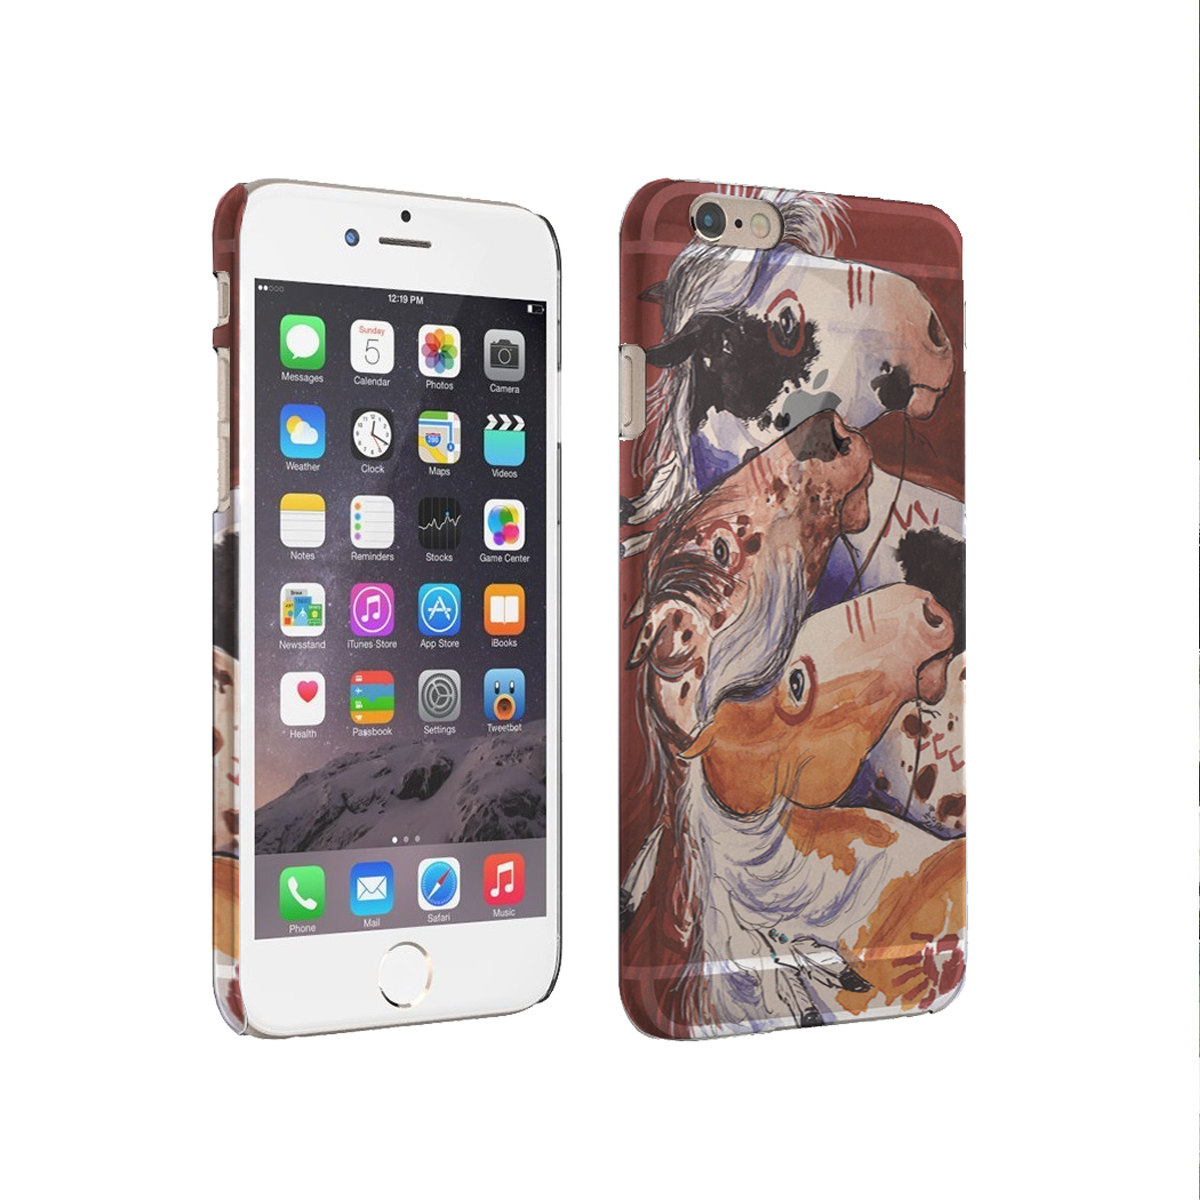 KuzmarK iPhone 6 Plus Rubber Cover Case - Pinto and Appaloosa Indian War Ponies Horse Art by Denise Every